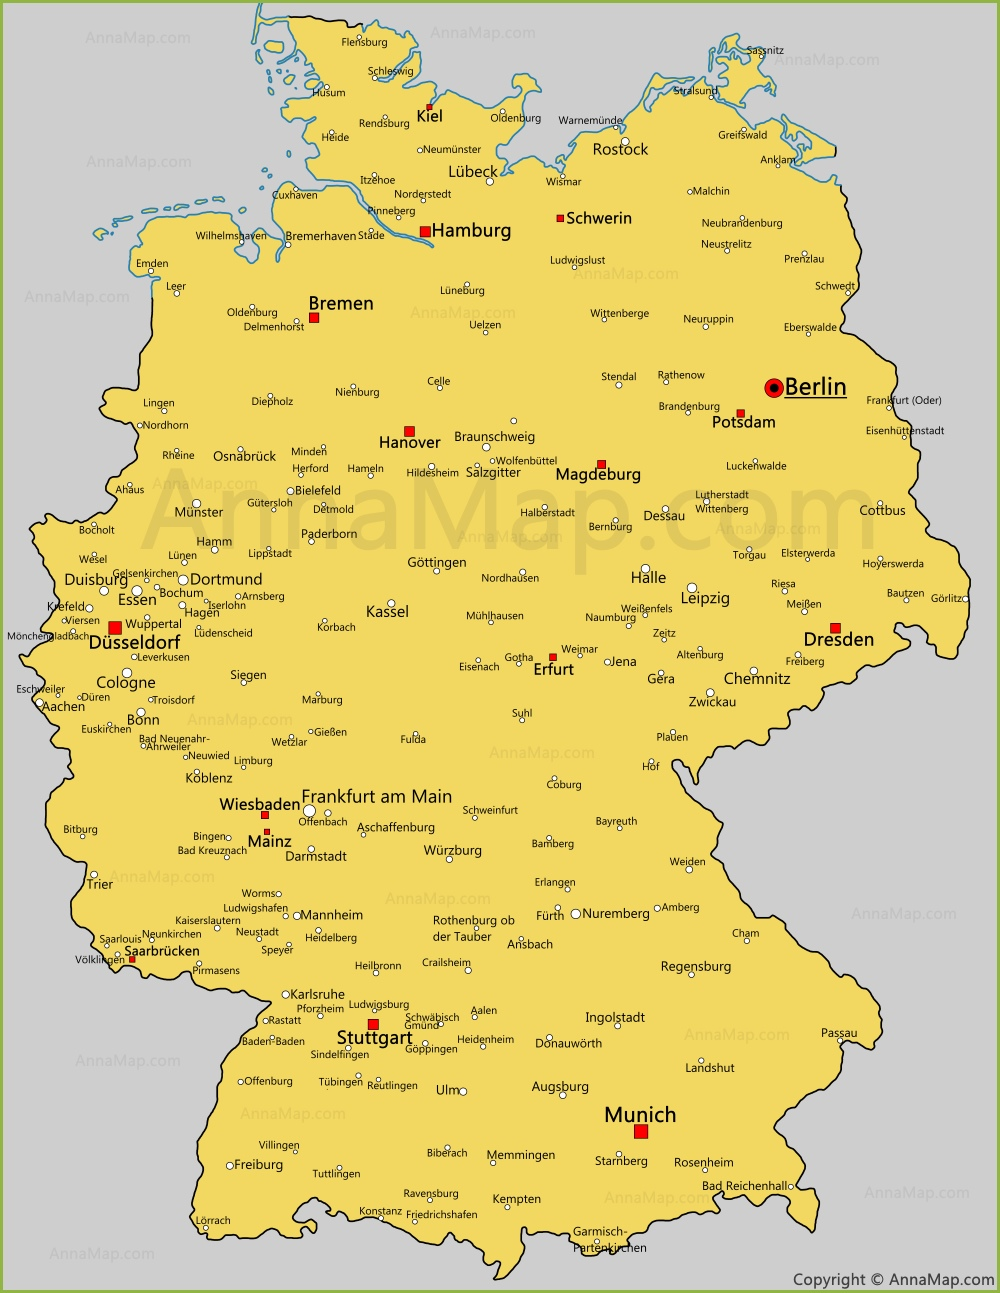 Maps Saarbrücken Germany Cities Map Cities And Towns In Germany Annamap